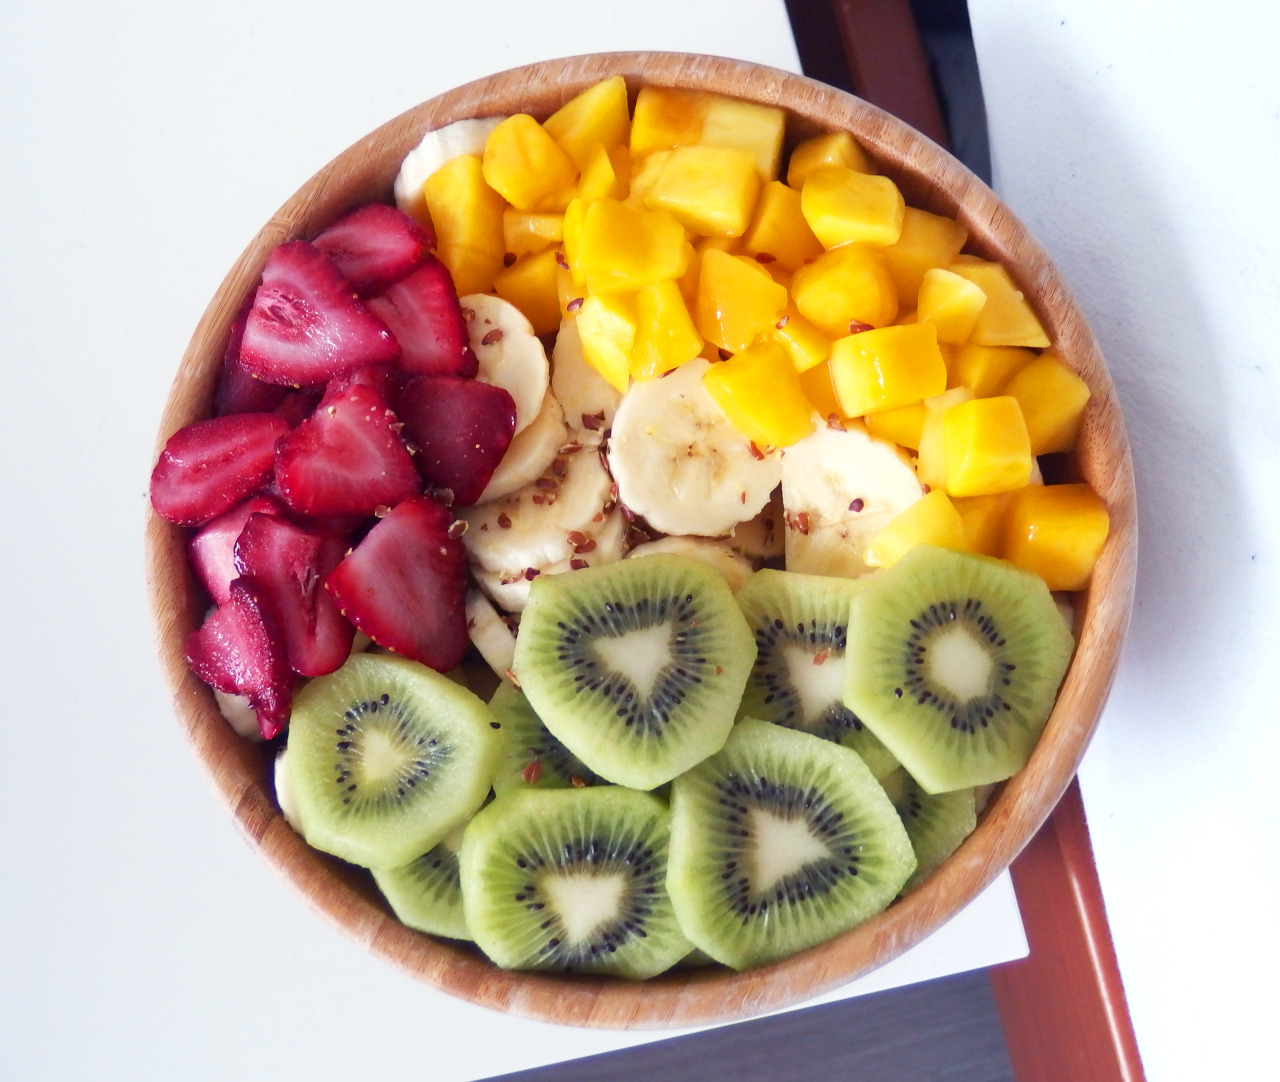 Image result for fruit bowls tumblr